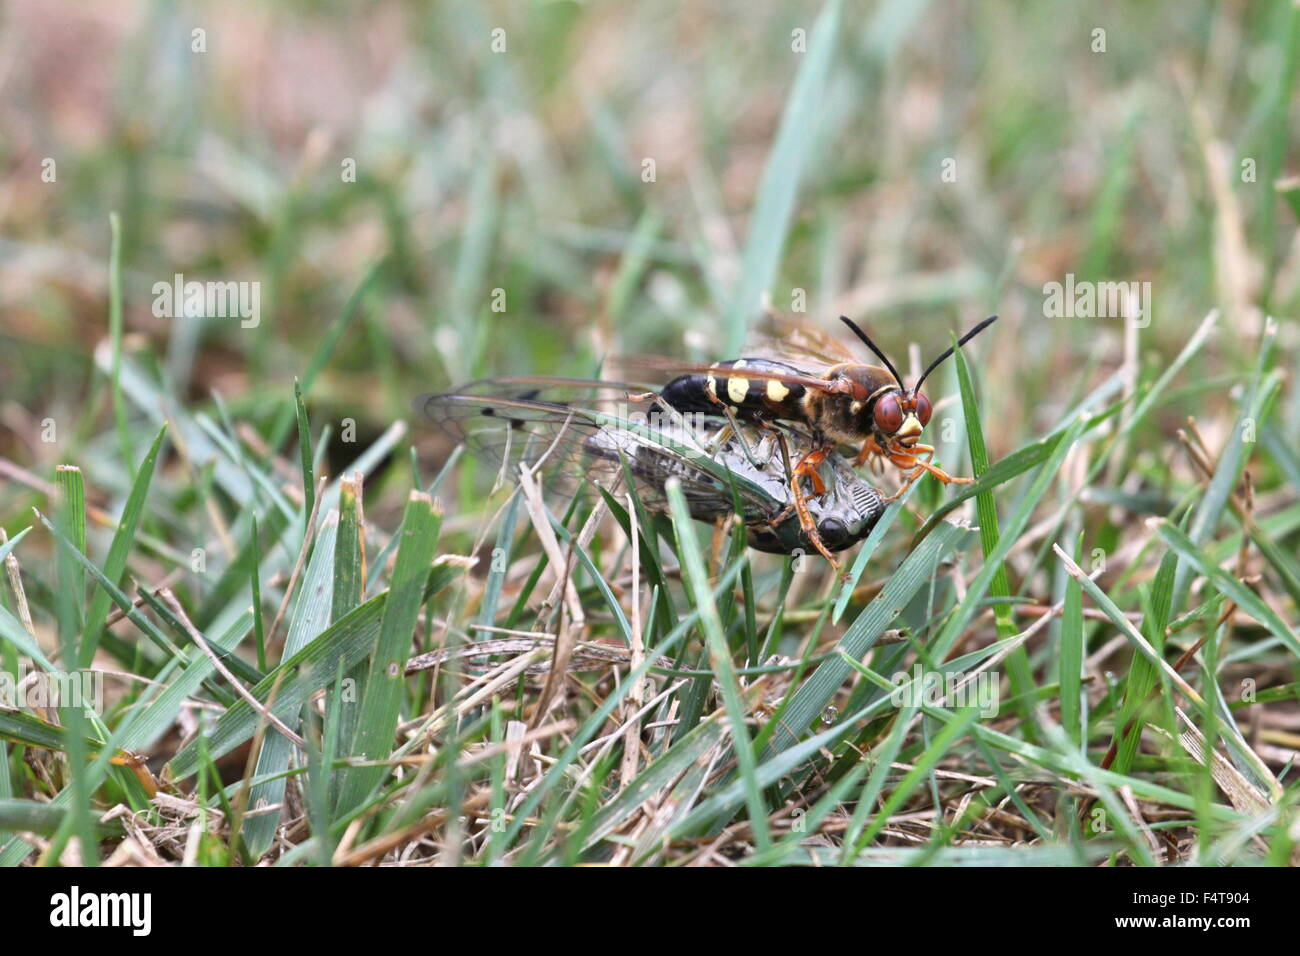 Cicada killer dragging a cicada in grass. Stock Photo